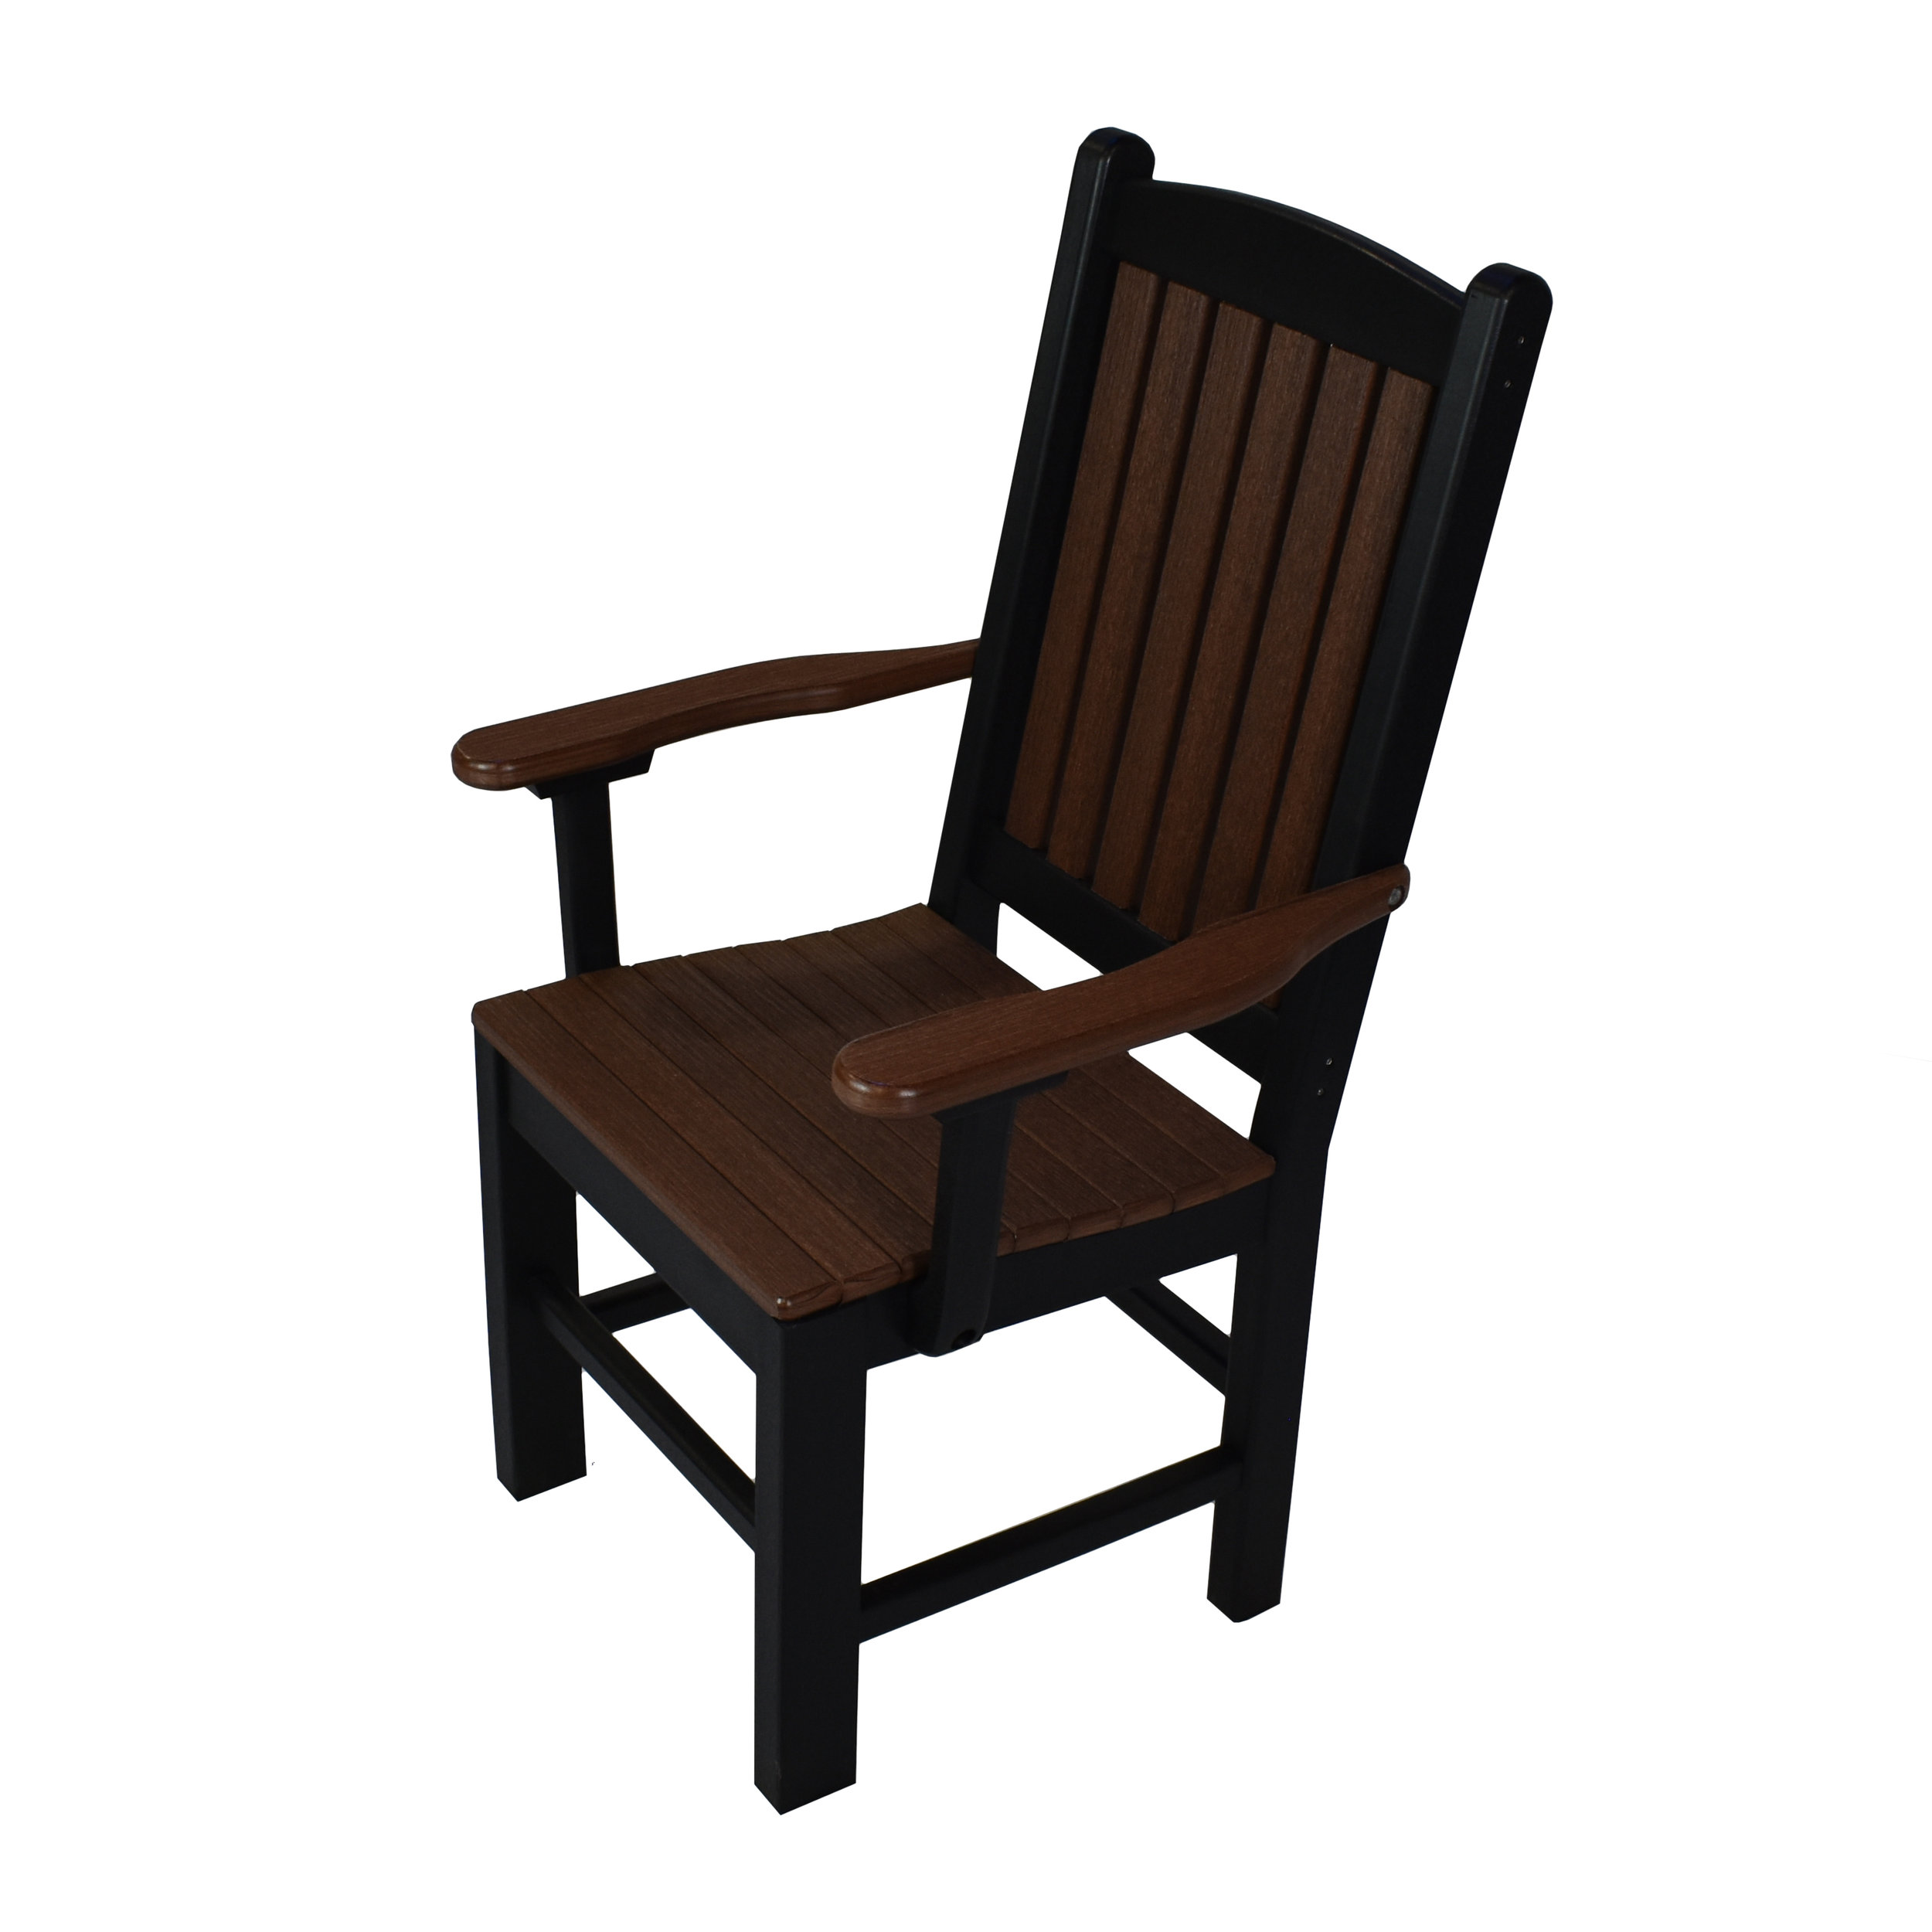 Luna Dining Chair (W/Arms)